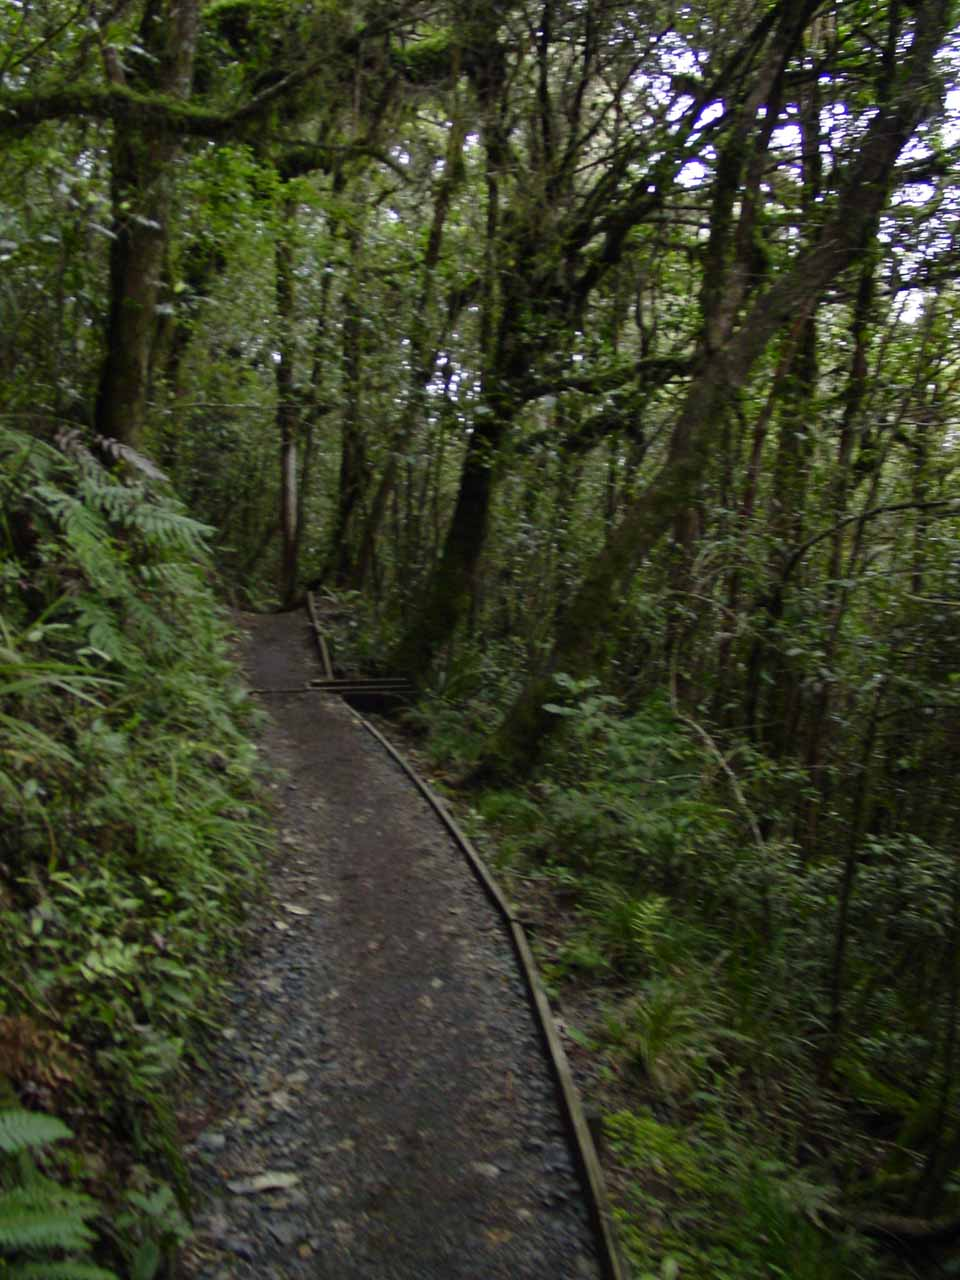 Eventually the track descended deep enough to where we re-entered lush temperate forest